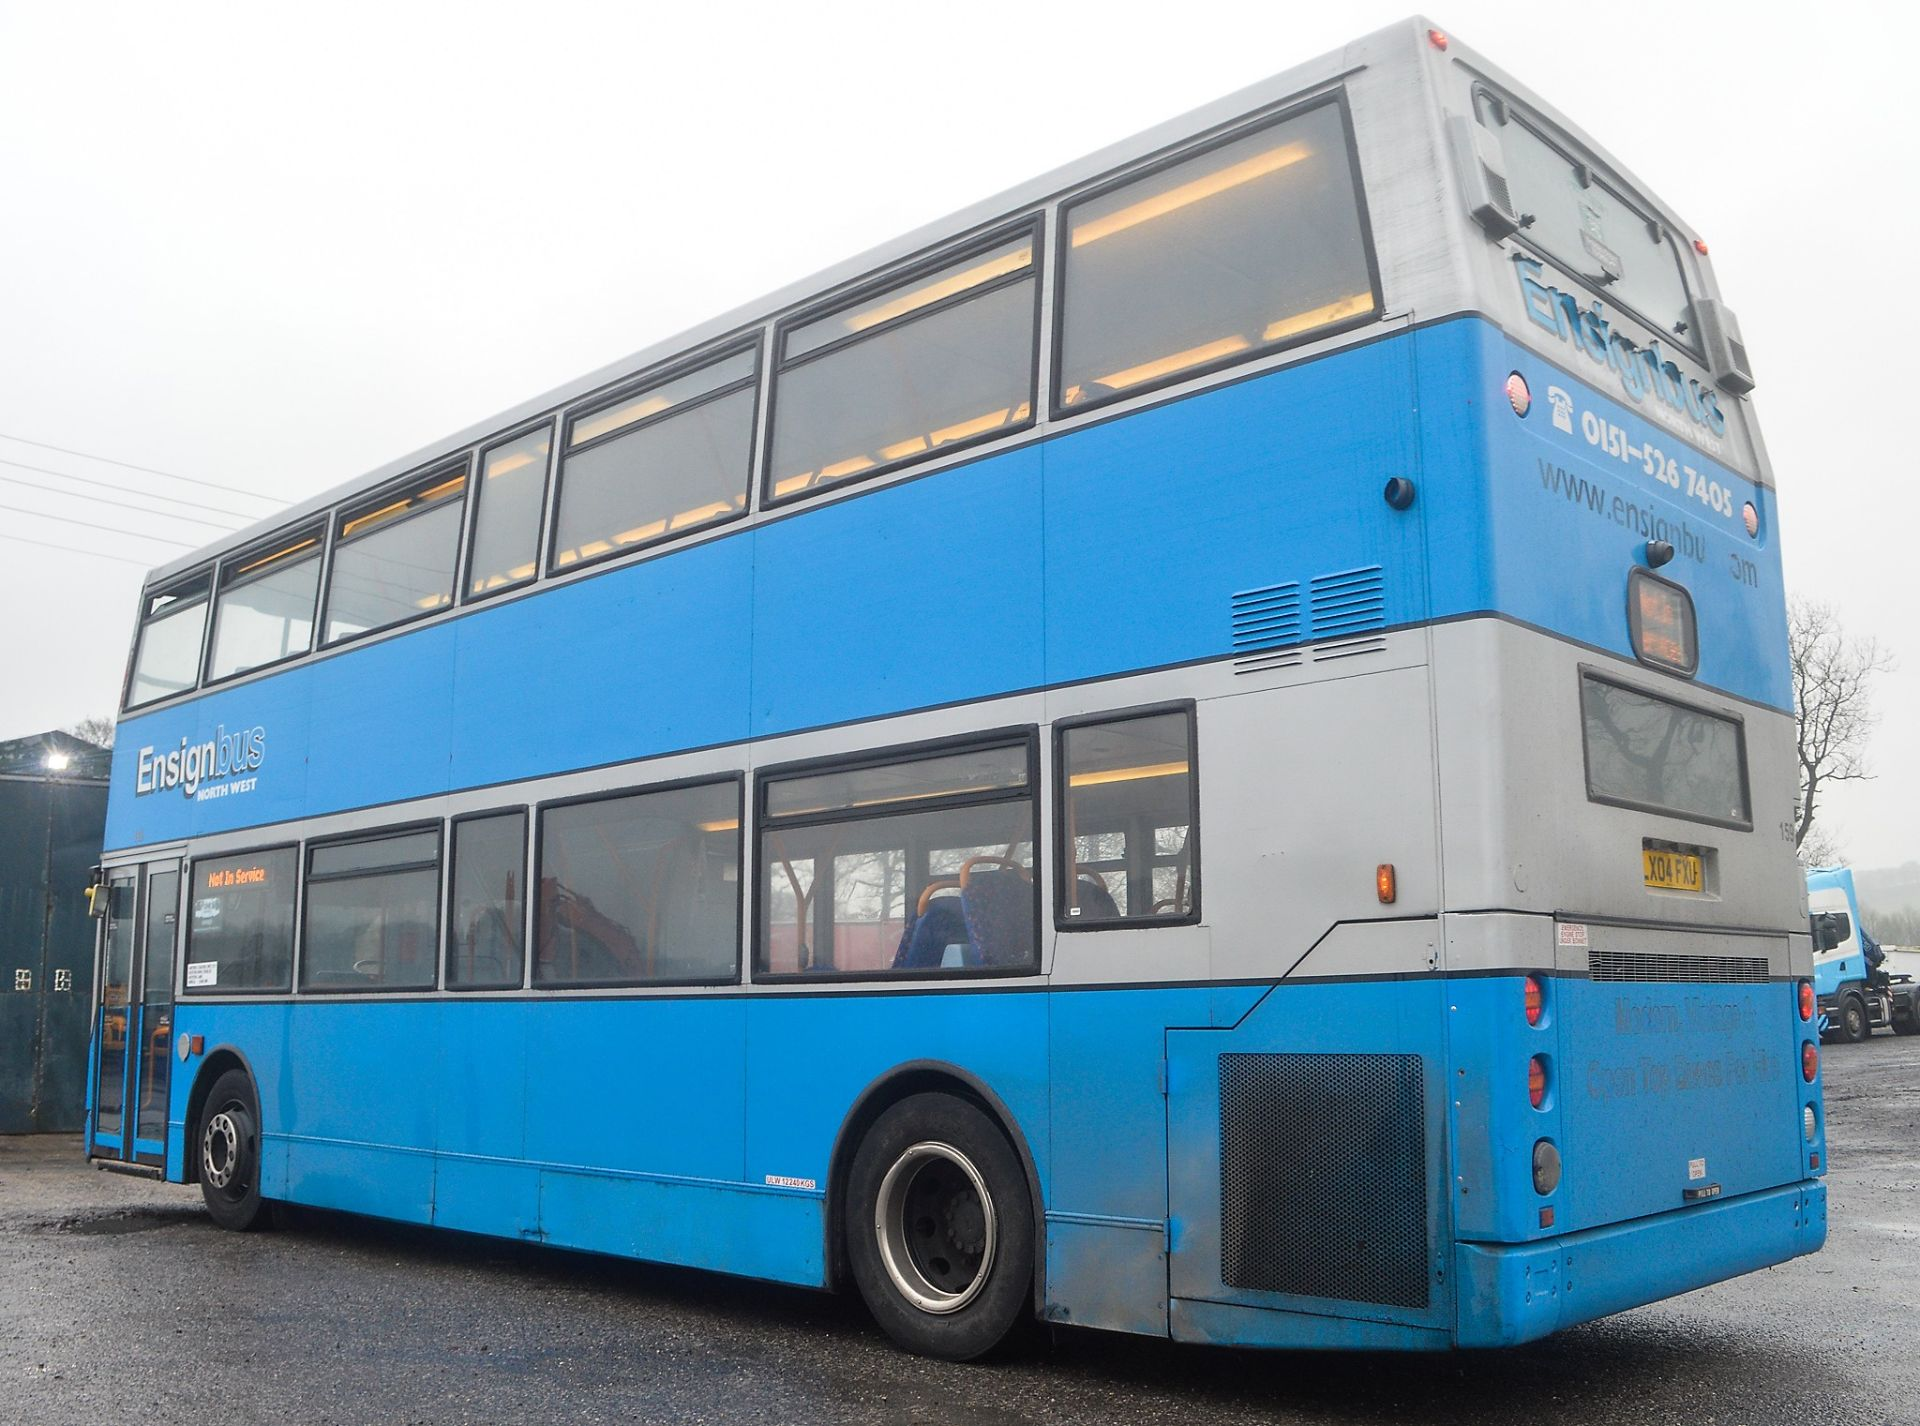 Lot 6 - Alexander Dennis Trident TransBus 80 seat double deck service bus Registration Number: LX04 FXU Date